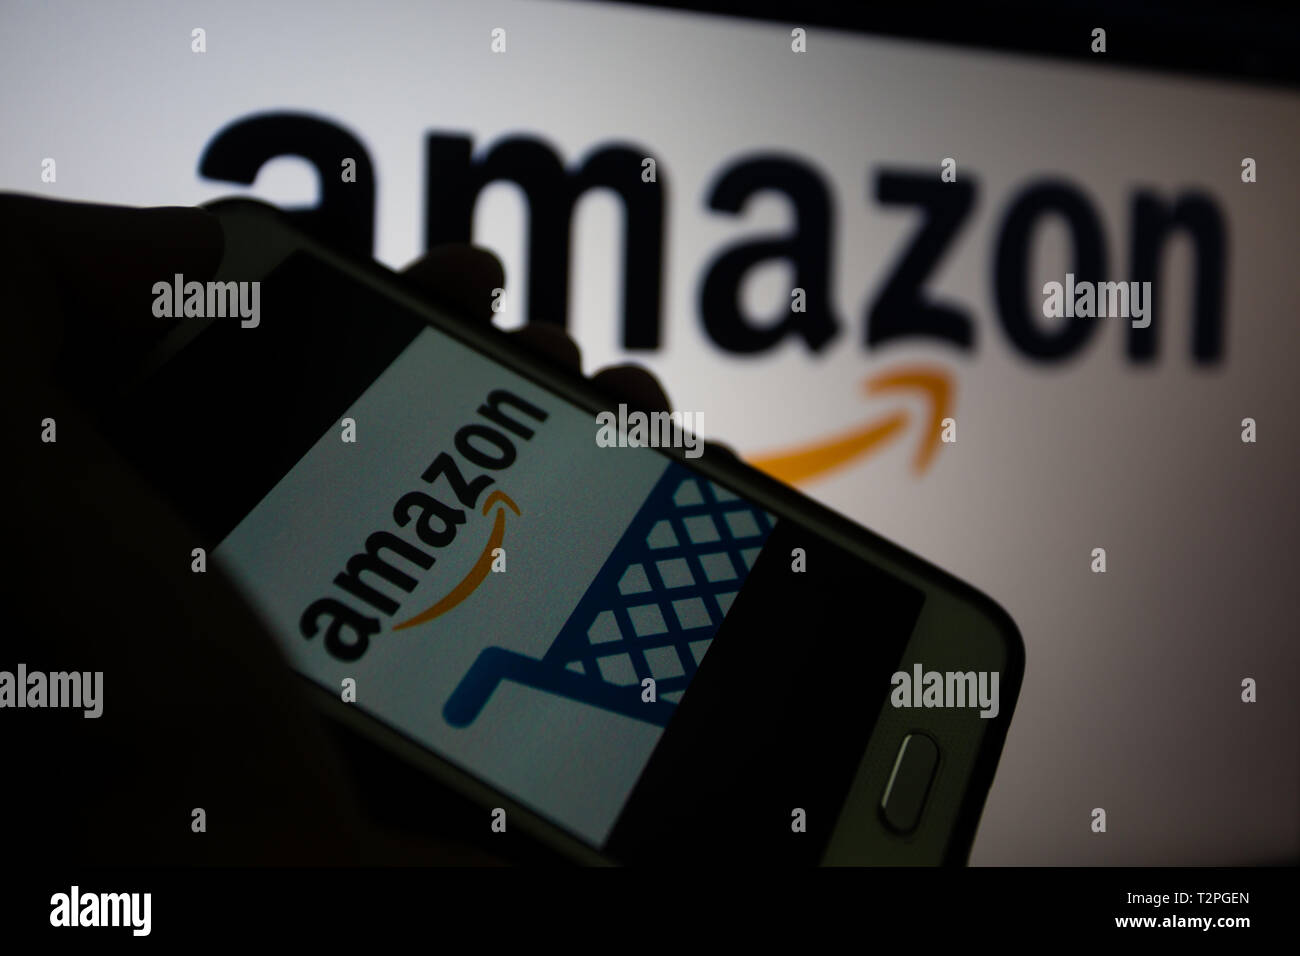 Amazon.com, American multinational technology company that focuses in e-commerce, logo is shown on a smartphone display, logo unfocused on background - Stock Image